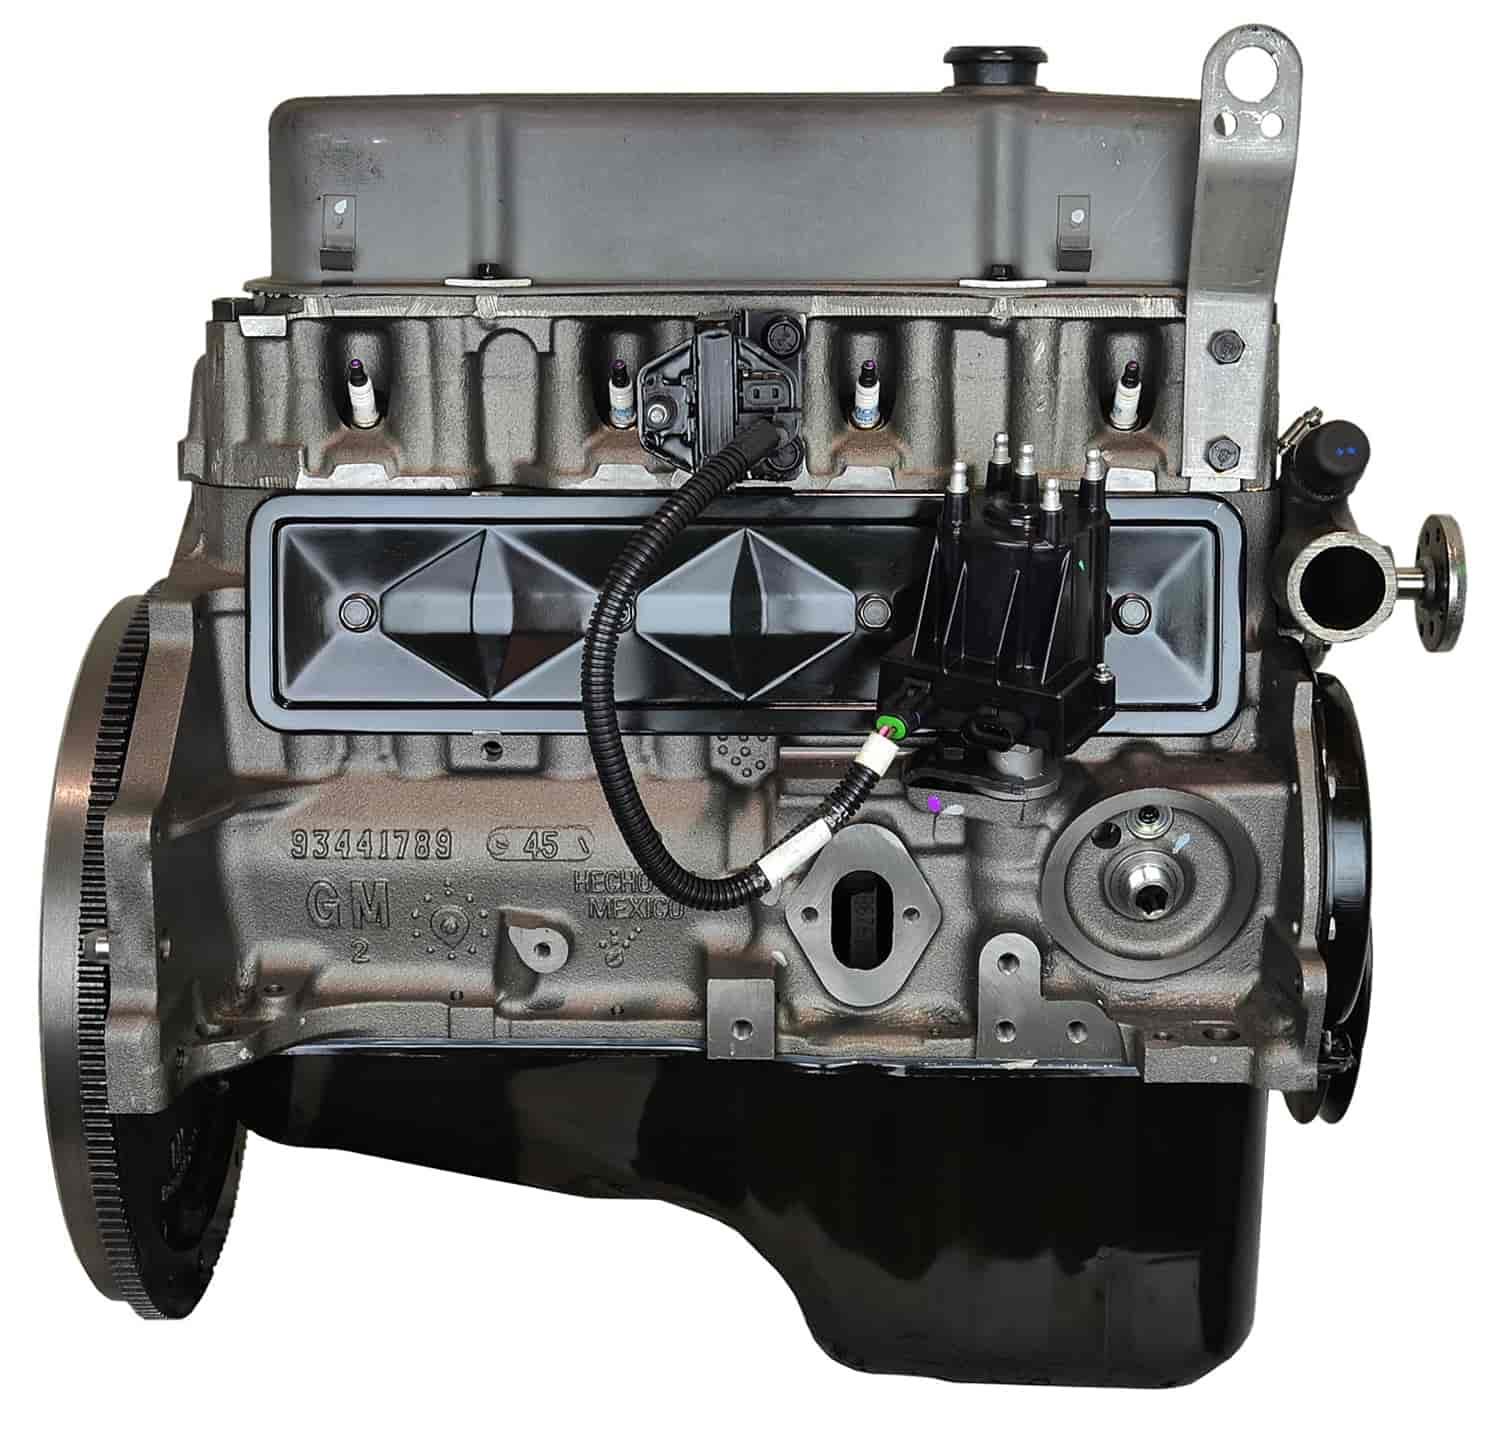 ATK Remanufactured Crate Engines for Marine | JEGS